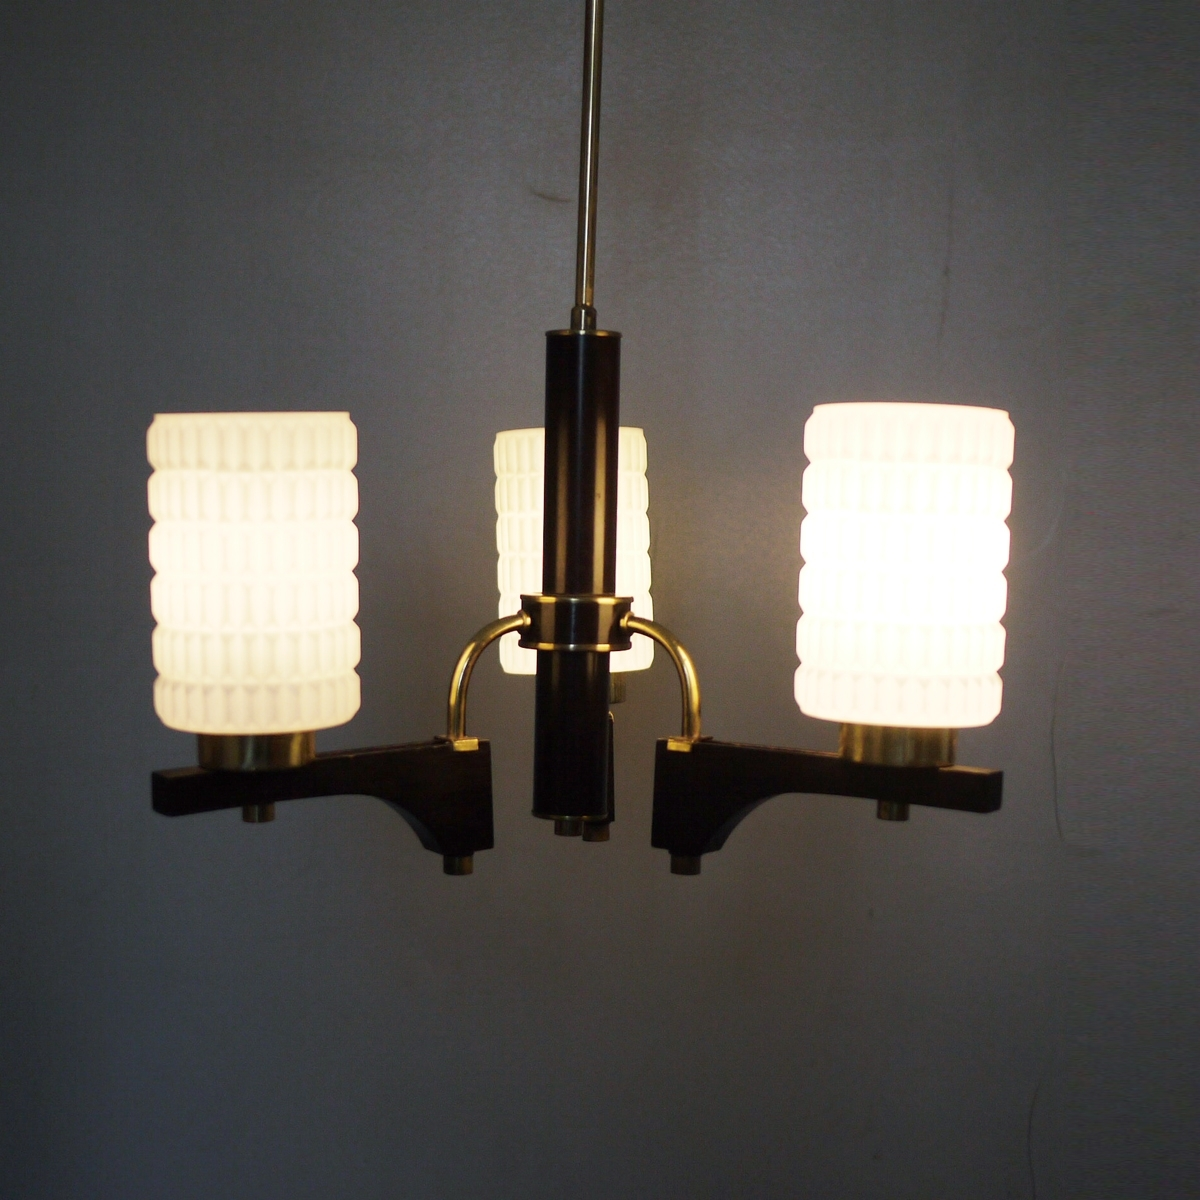 Vintage Gold And Black Glass Chandelier For Sale At Pamono Throughout Trendy Black Glass Chandelier (Gallery 16 of 20)